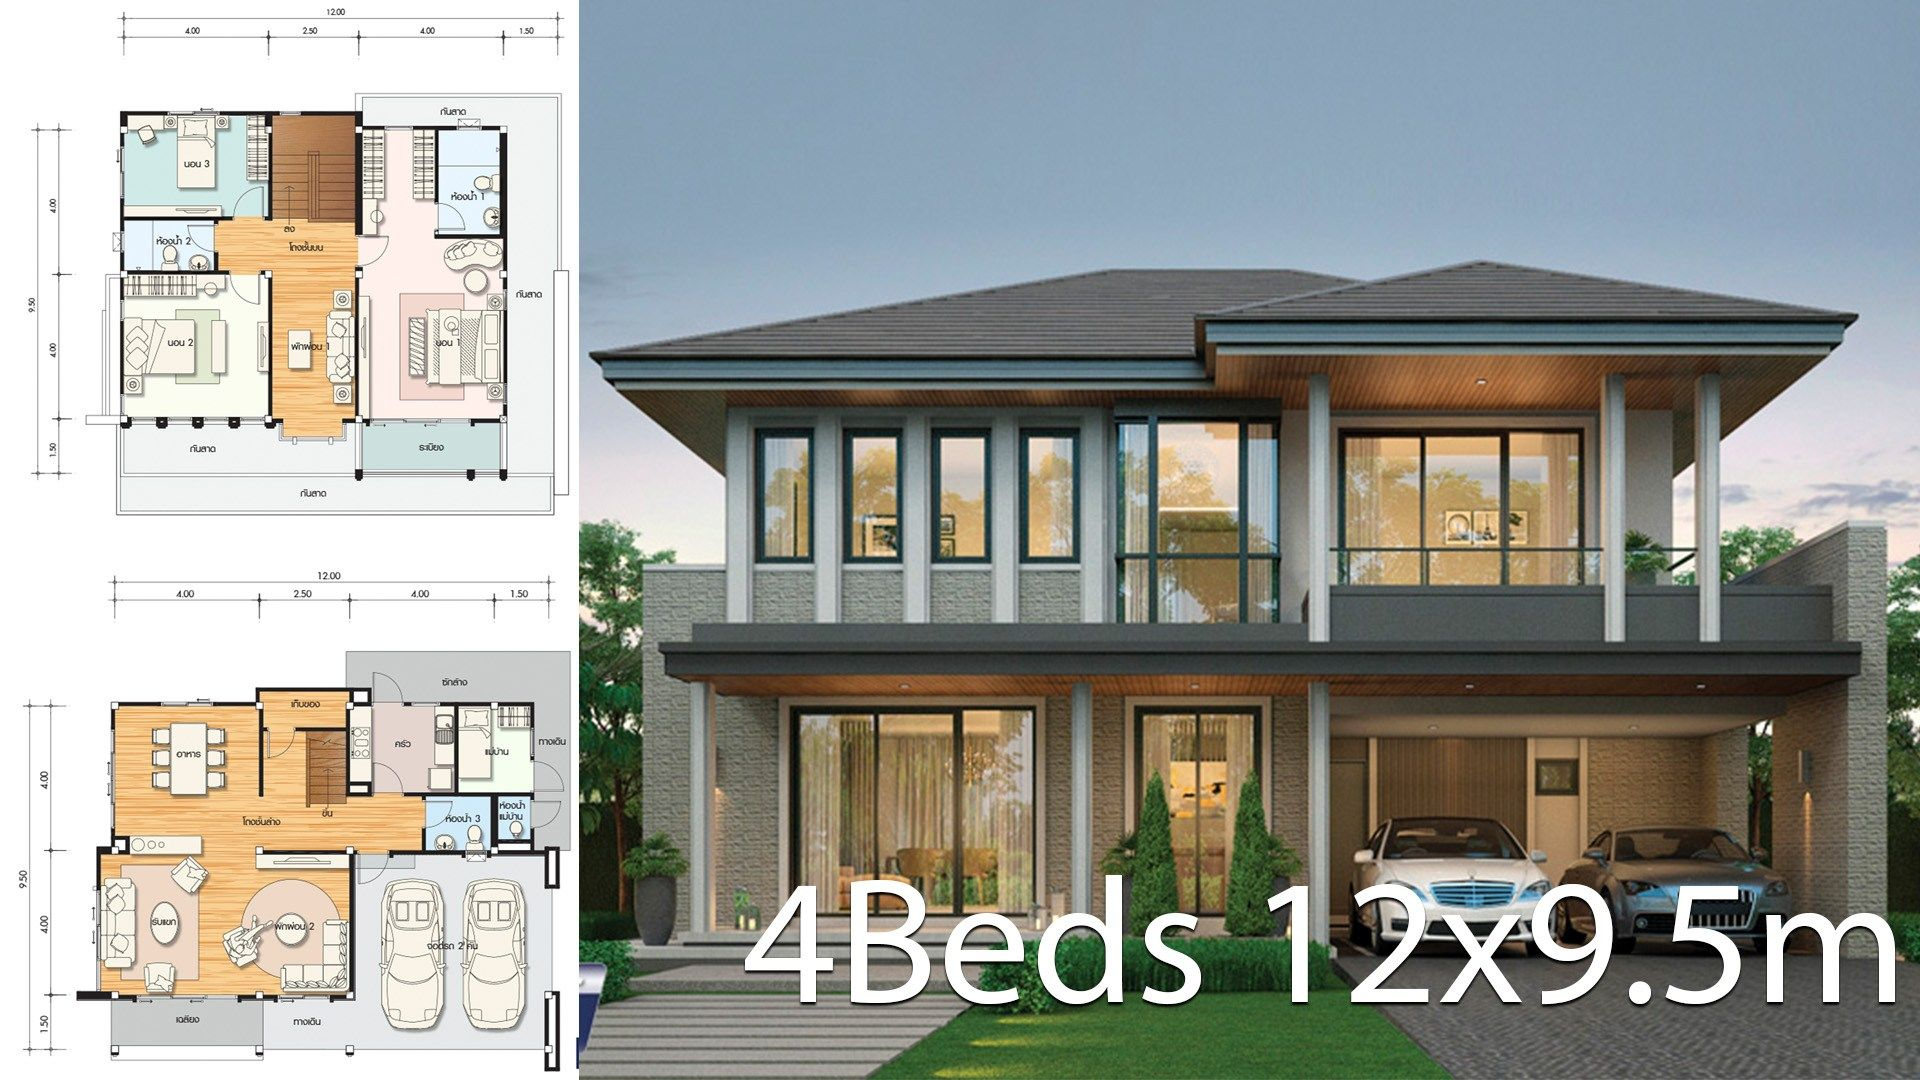 House Design Plan 12x9 5m With 4 Bedrooms Style Garden Househouse Description Number Of Floors 2 Storey Hous Home Design Plans House Design House In The Woods